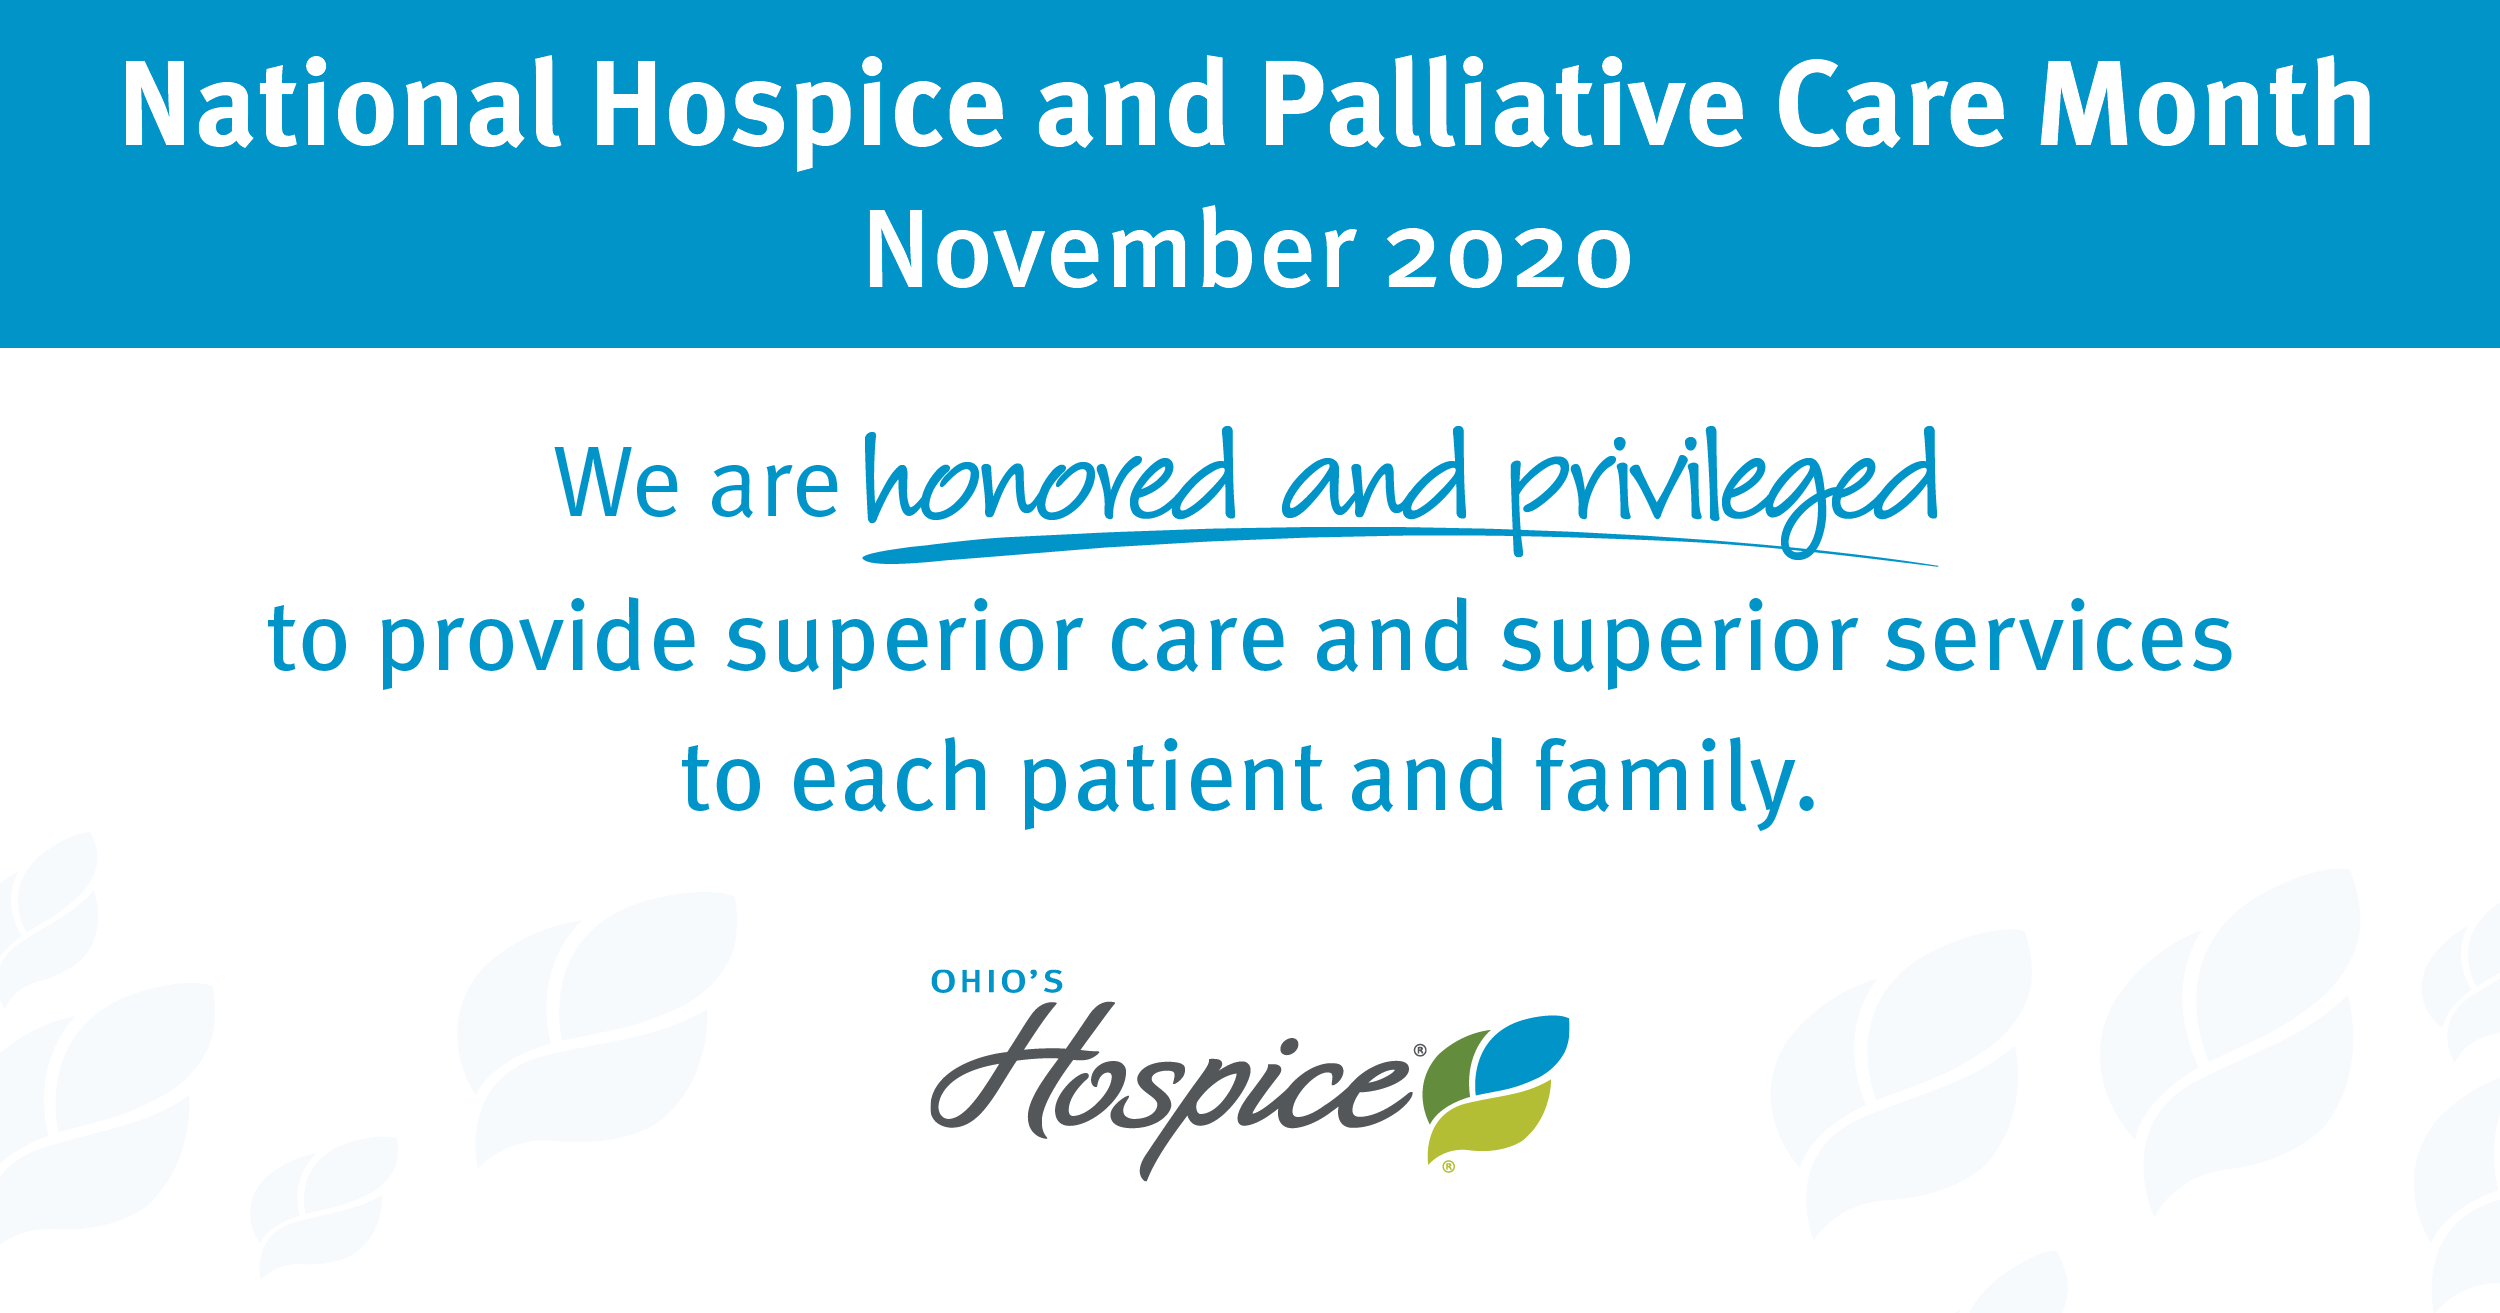 National Hospice And Palliative Care Month, November 2020. We Are Honored And Privileged To Provide Superior Care And Superior Services To Each Patient And Family.